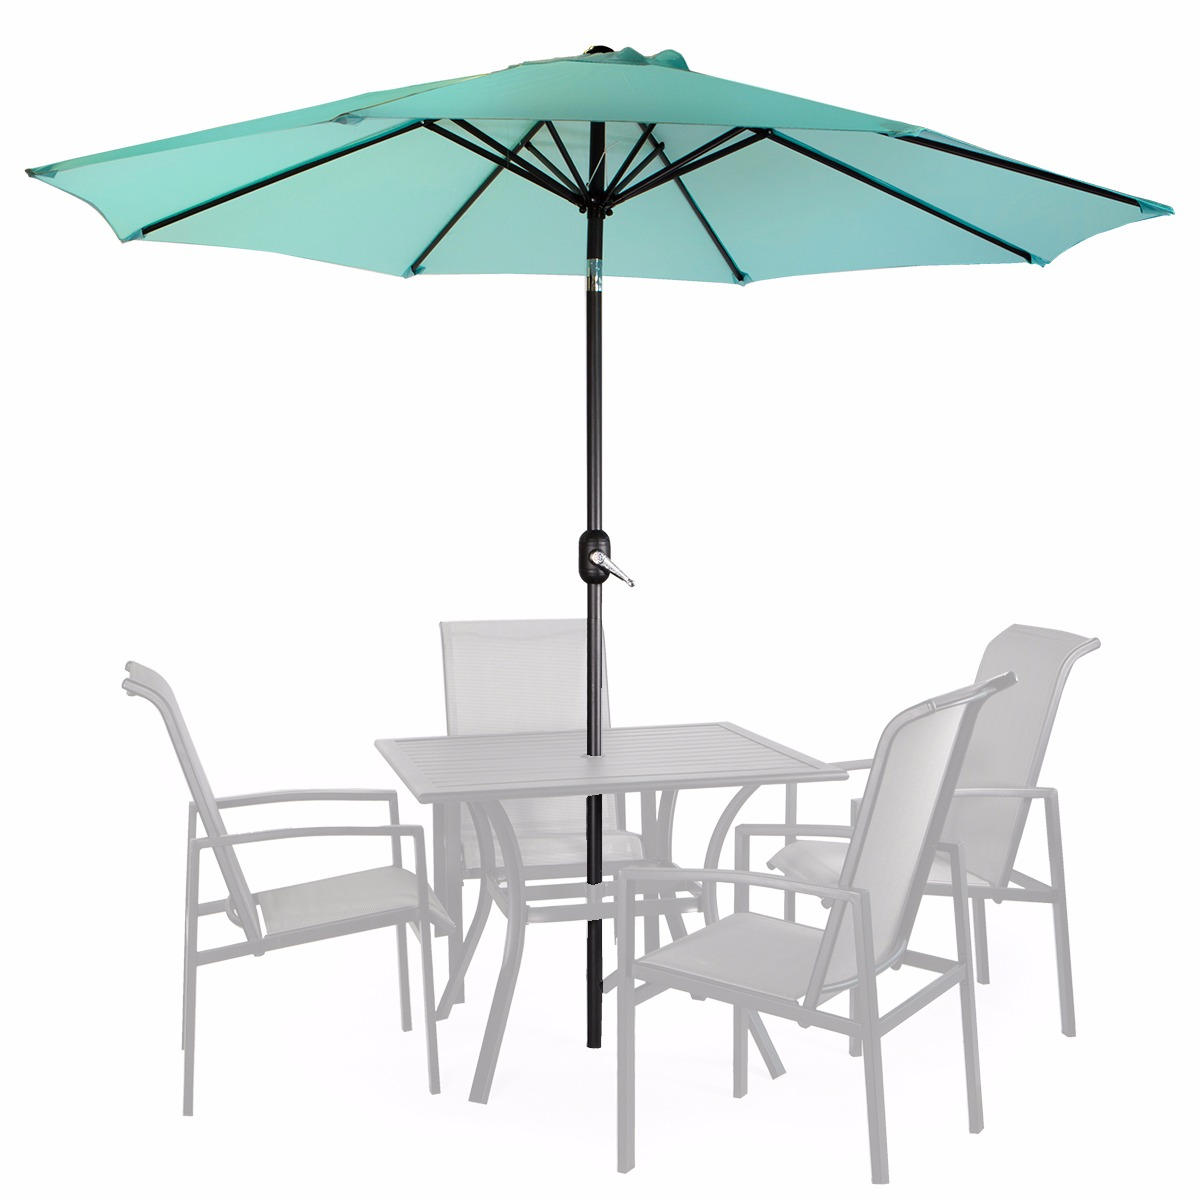 Product Image 9u0027 Patio Umbrella Round Sunshade Outdoor Canopy Tilt And  Crank   Aqua